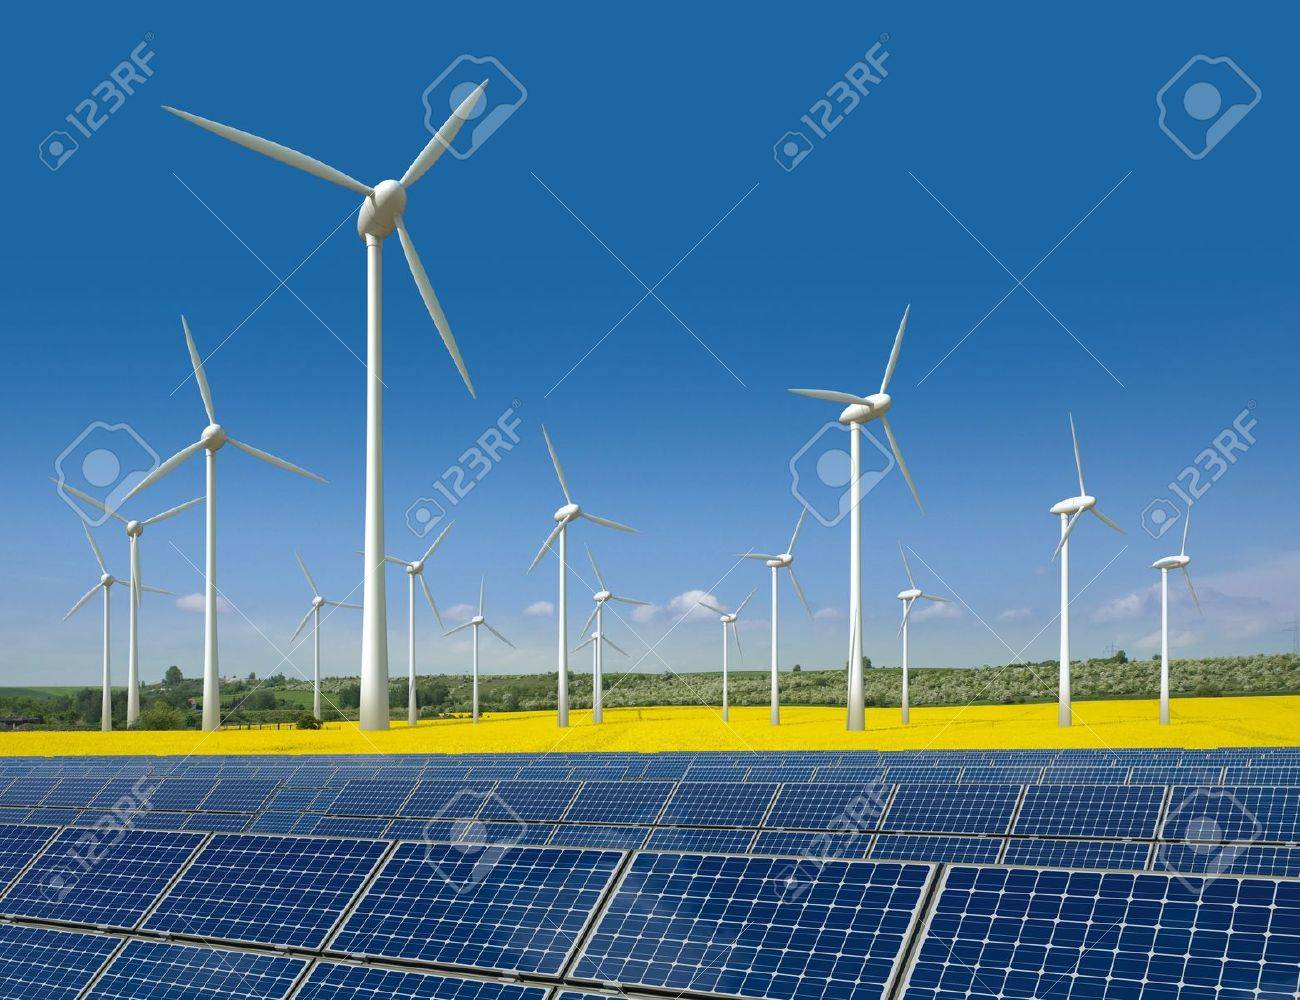 Wind turbines and solar panels in a rapeseed field - 10494635